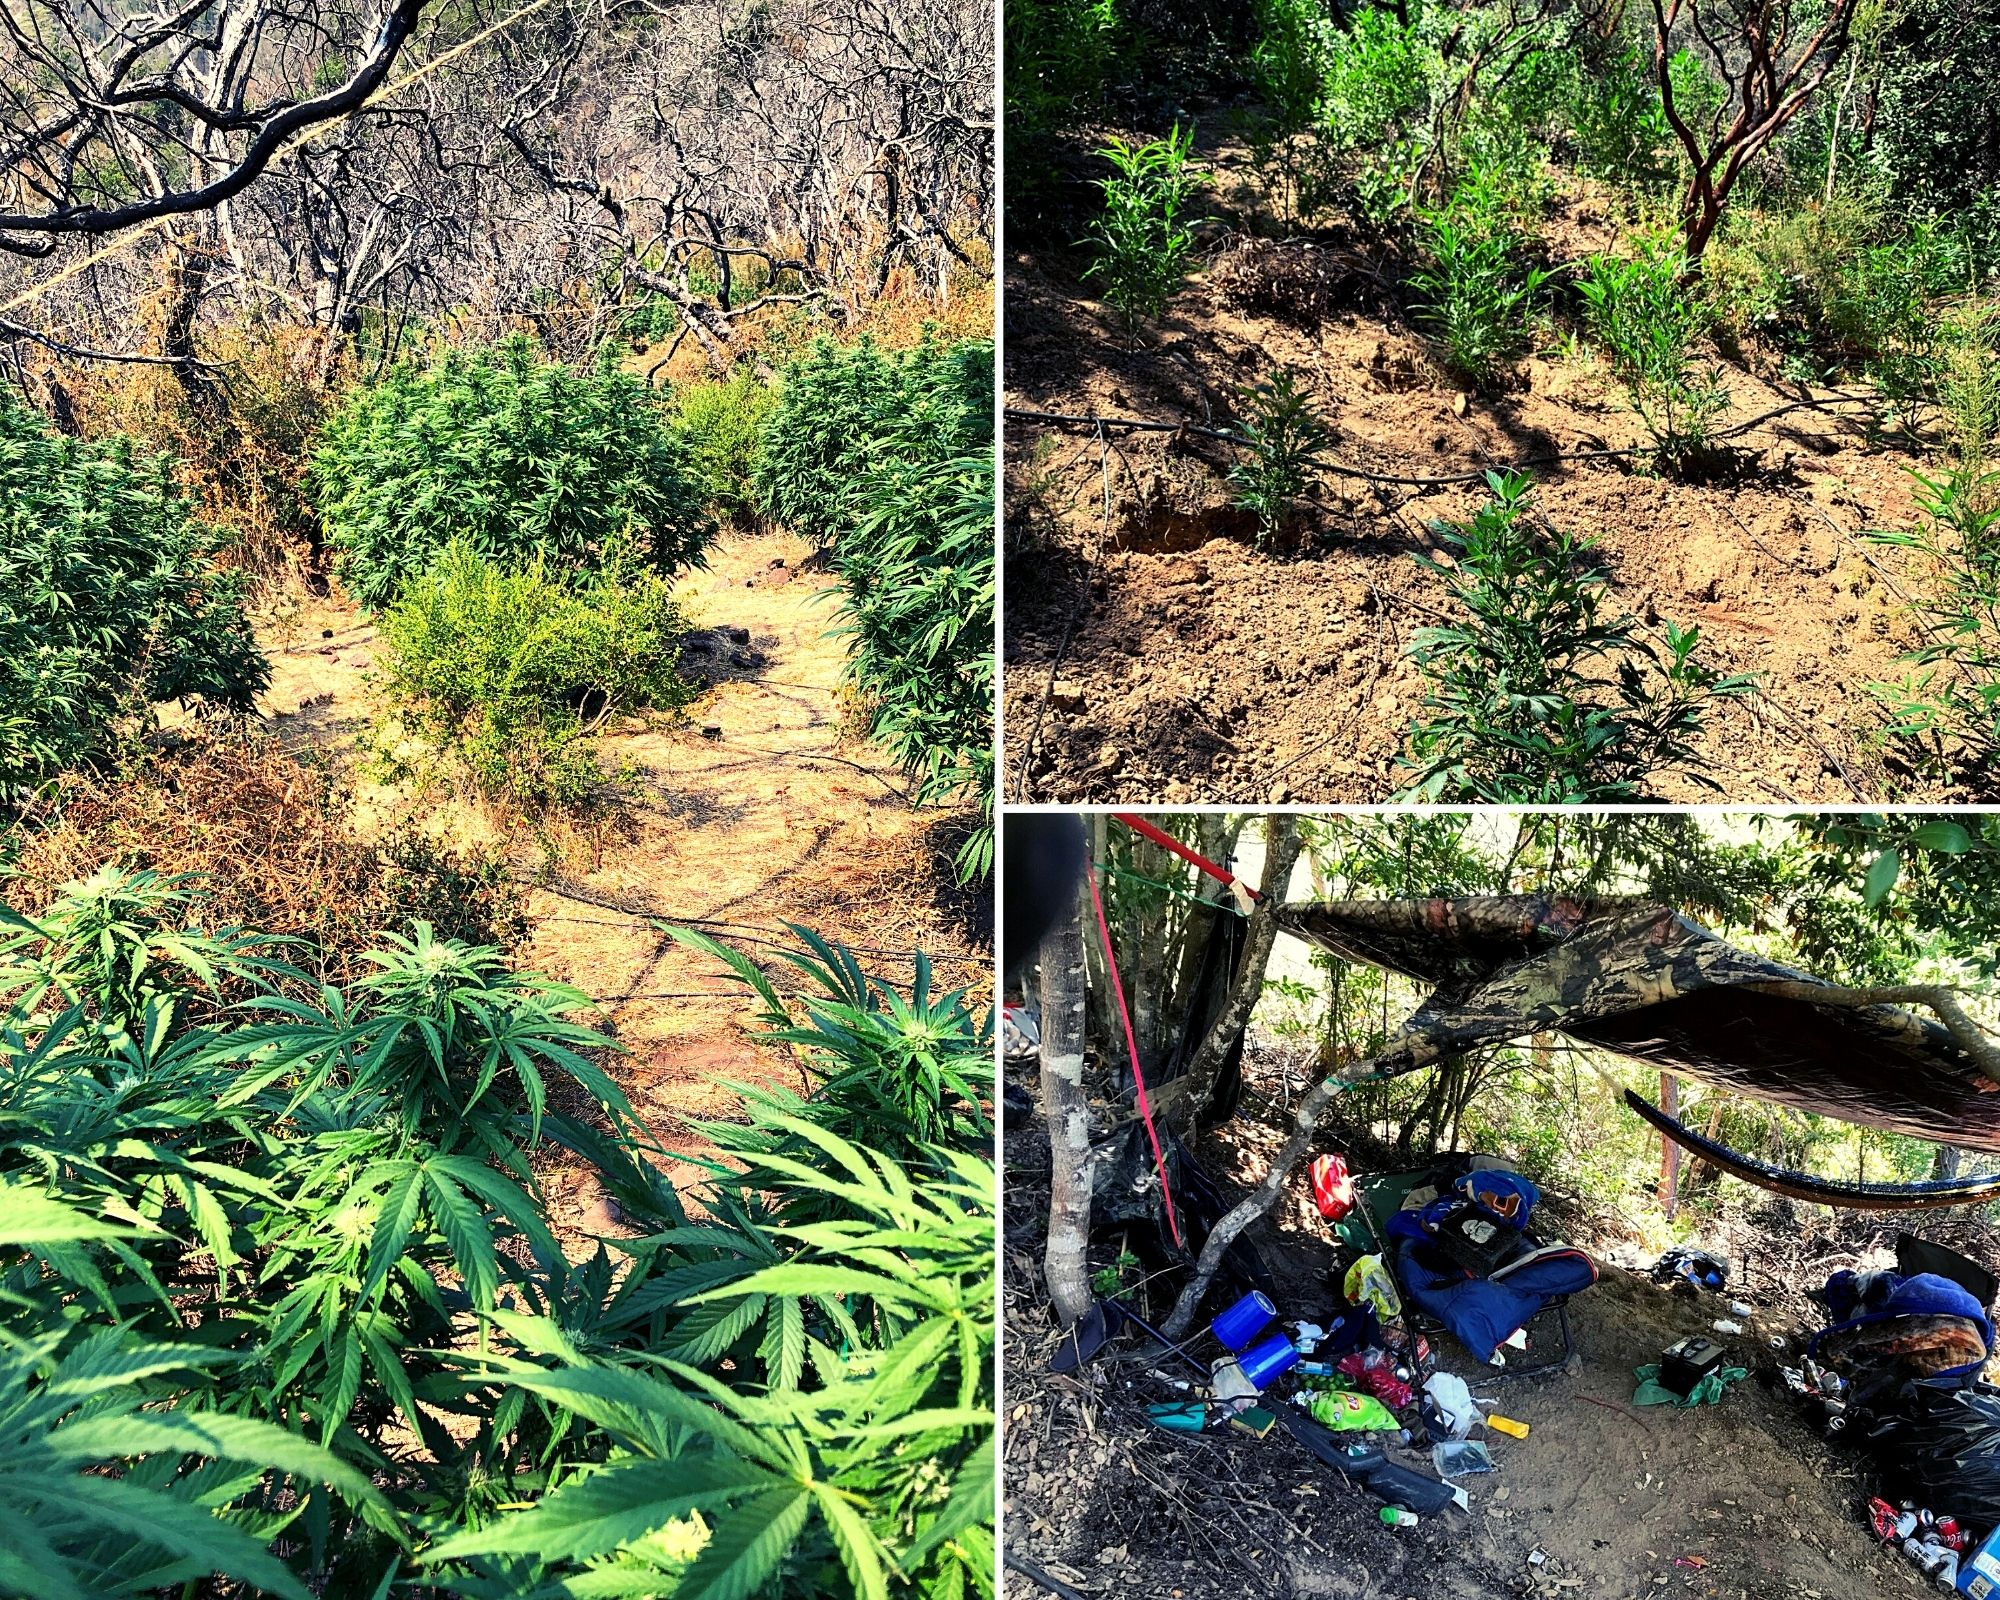 Left: Cannabis plants at Sugarloaf Ridge State Park. Top right/bottom: Cannabis grow and An illegal campsite at Robert Louis Stevenson State Park.